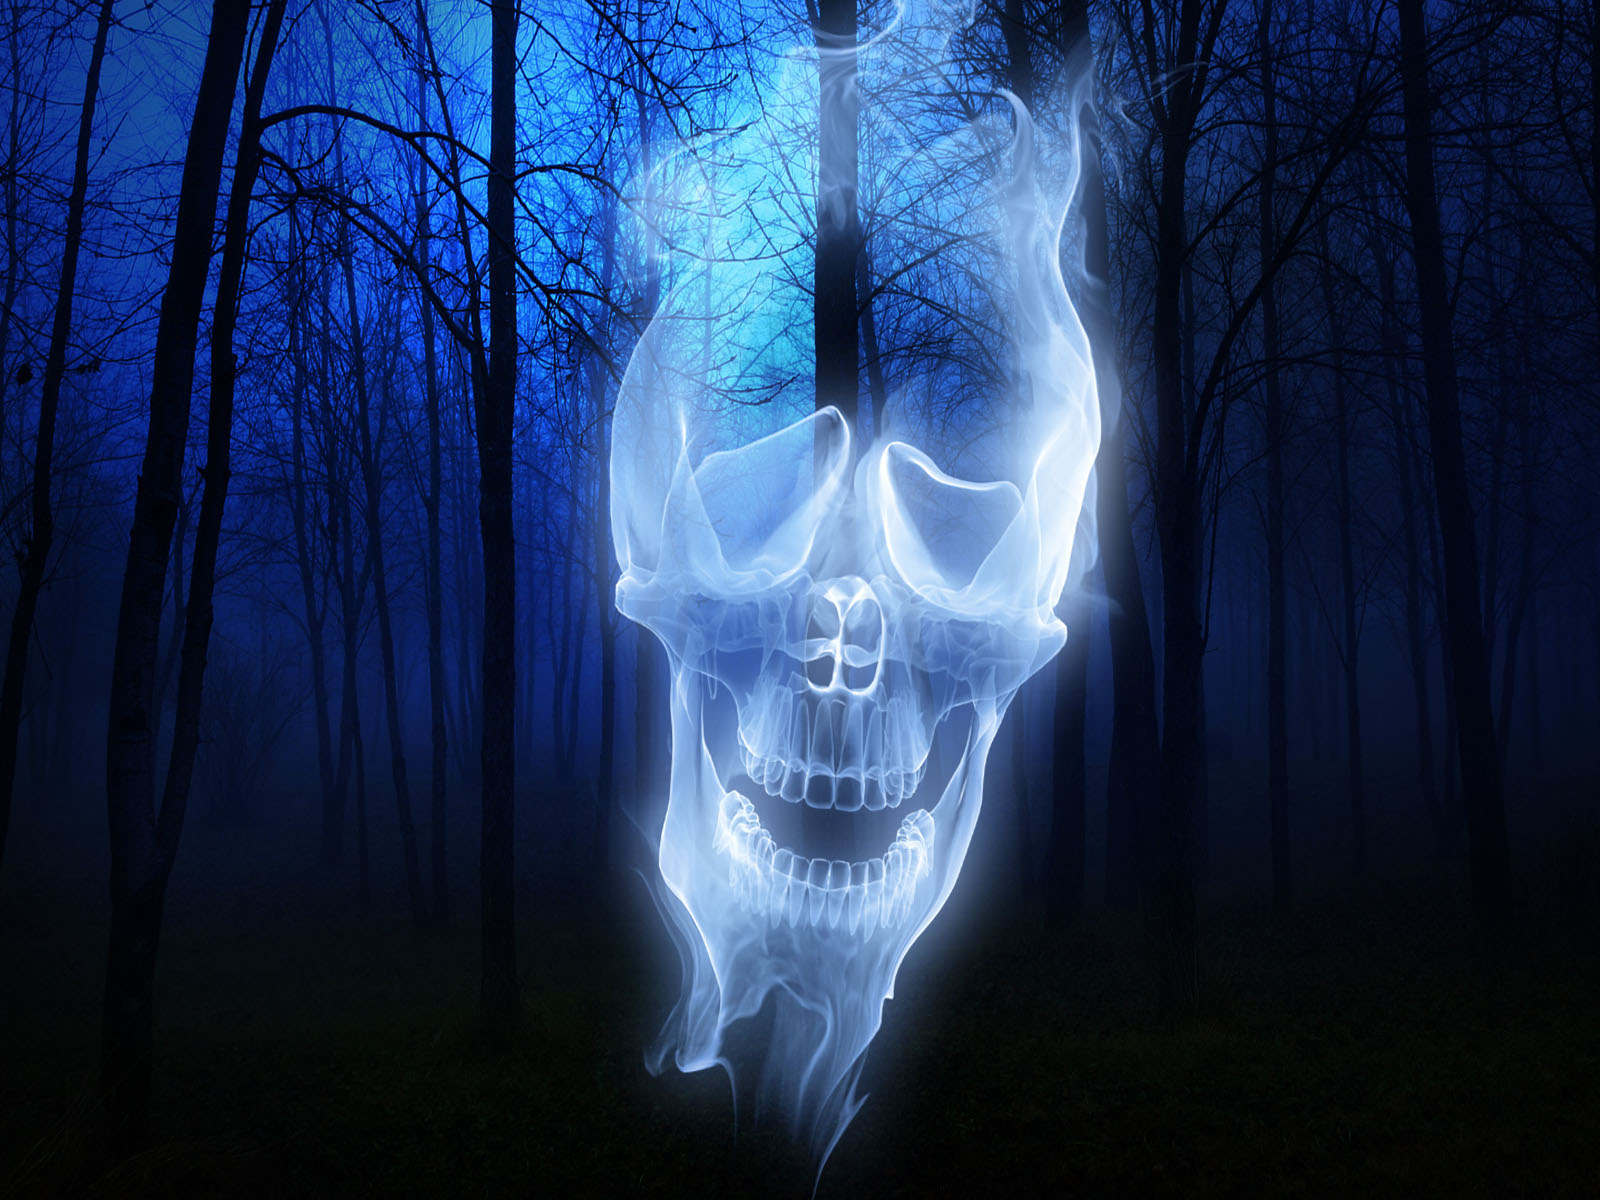 Forest Skull Ghost wallpapers Forest Skull Ghost stock photos 1600x1200